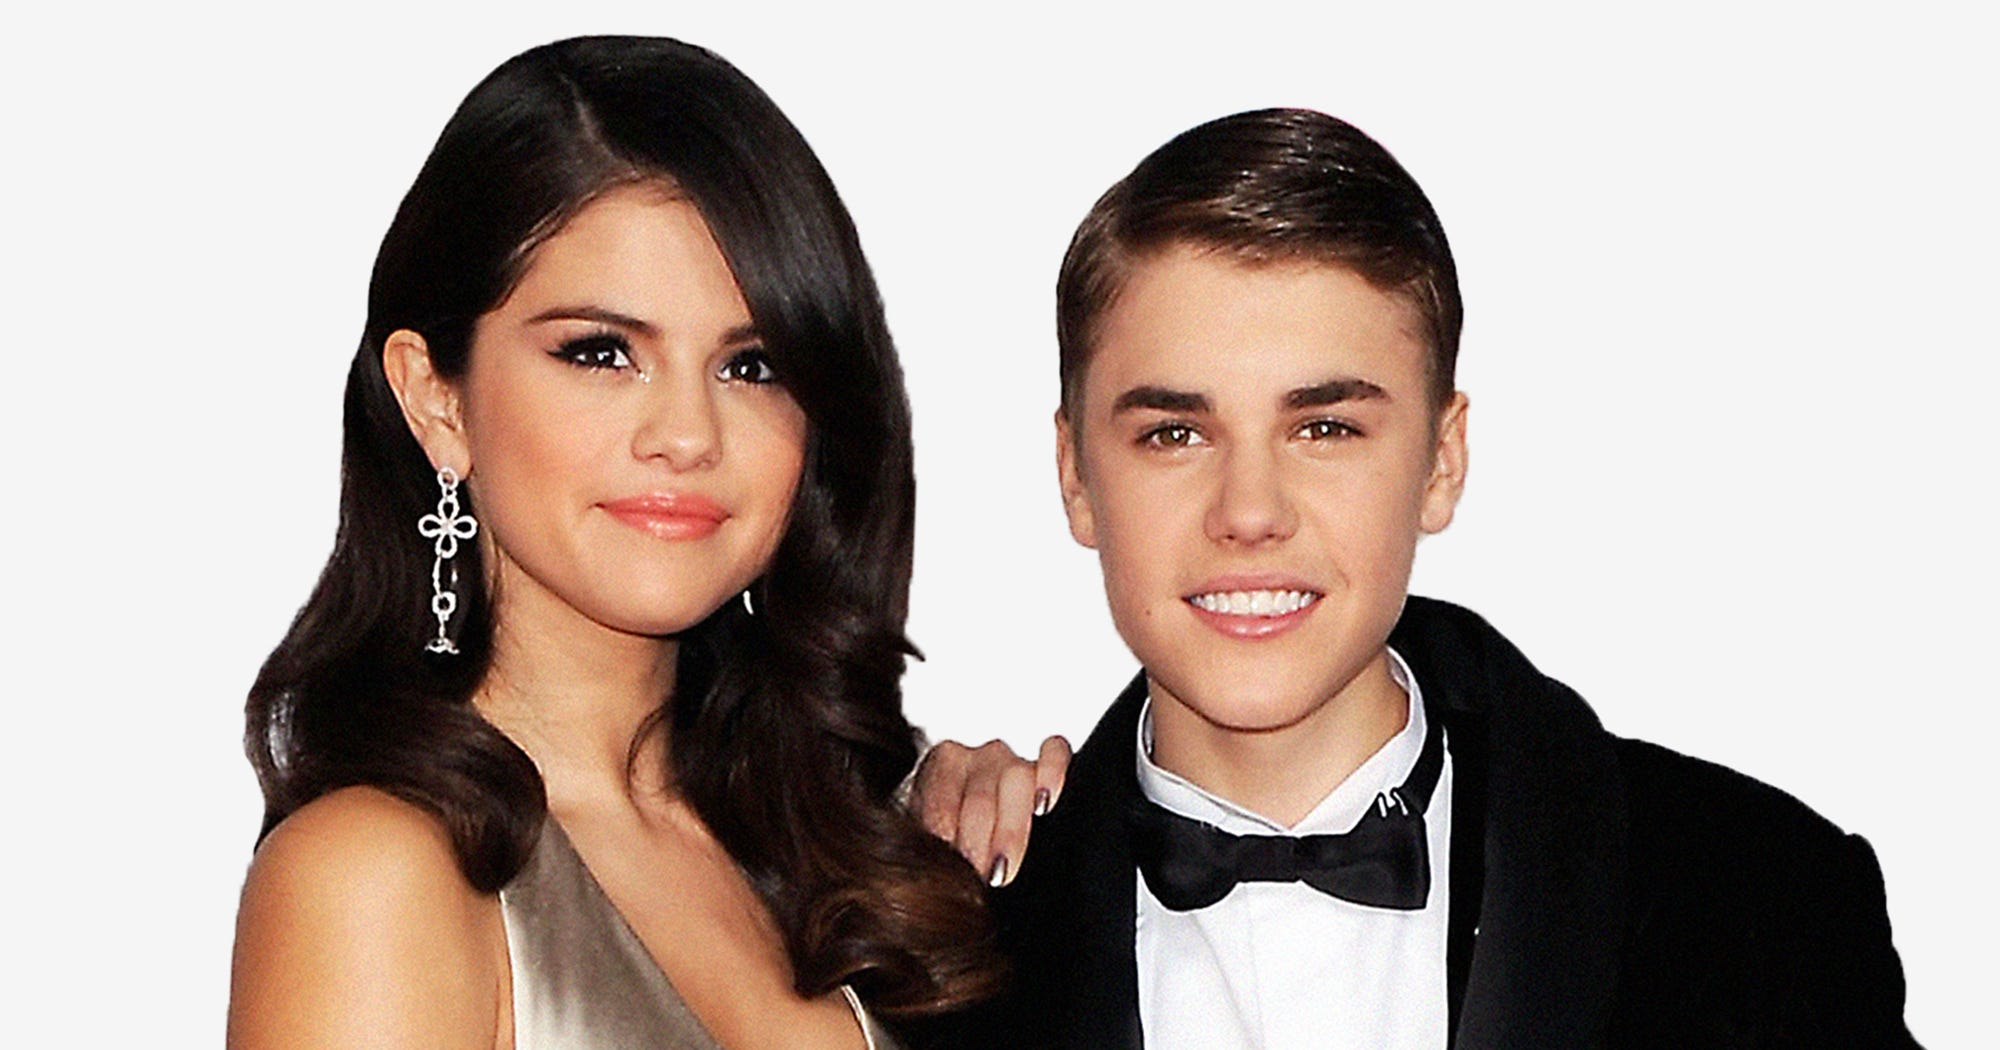 Is selena gomez and justin bieber still dating